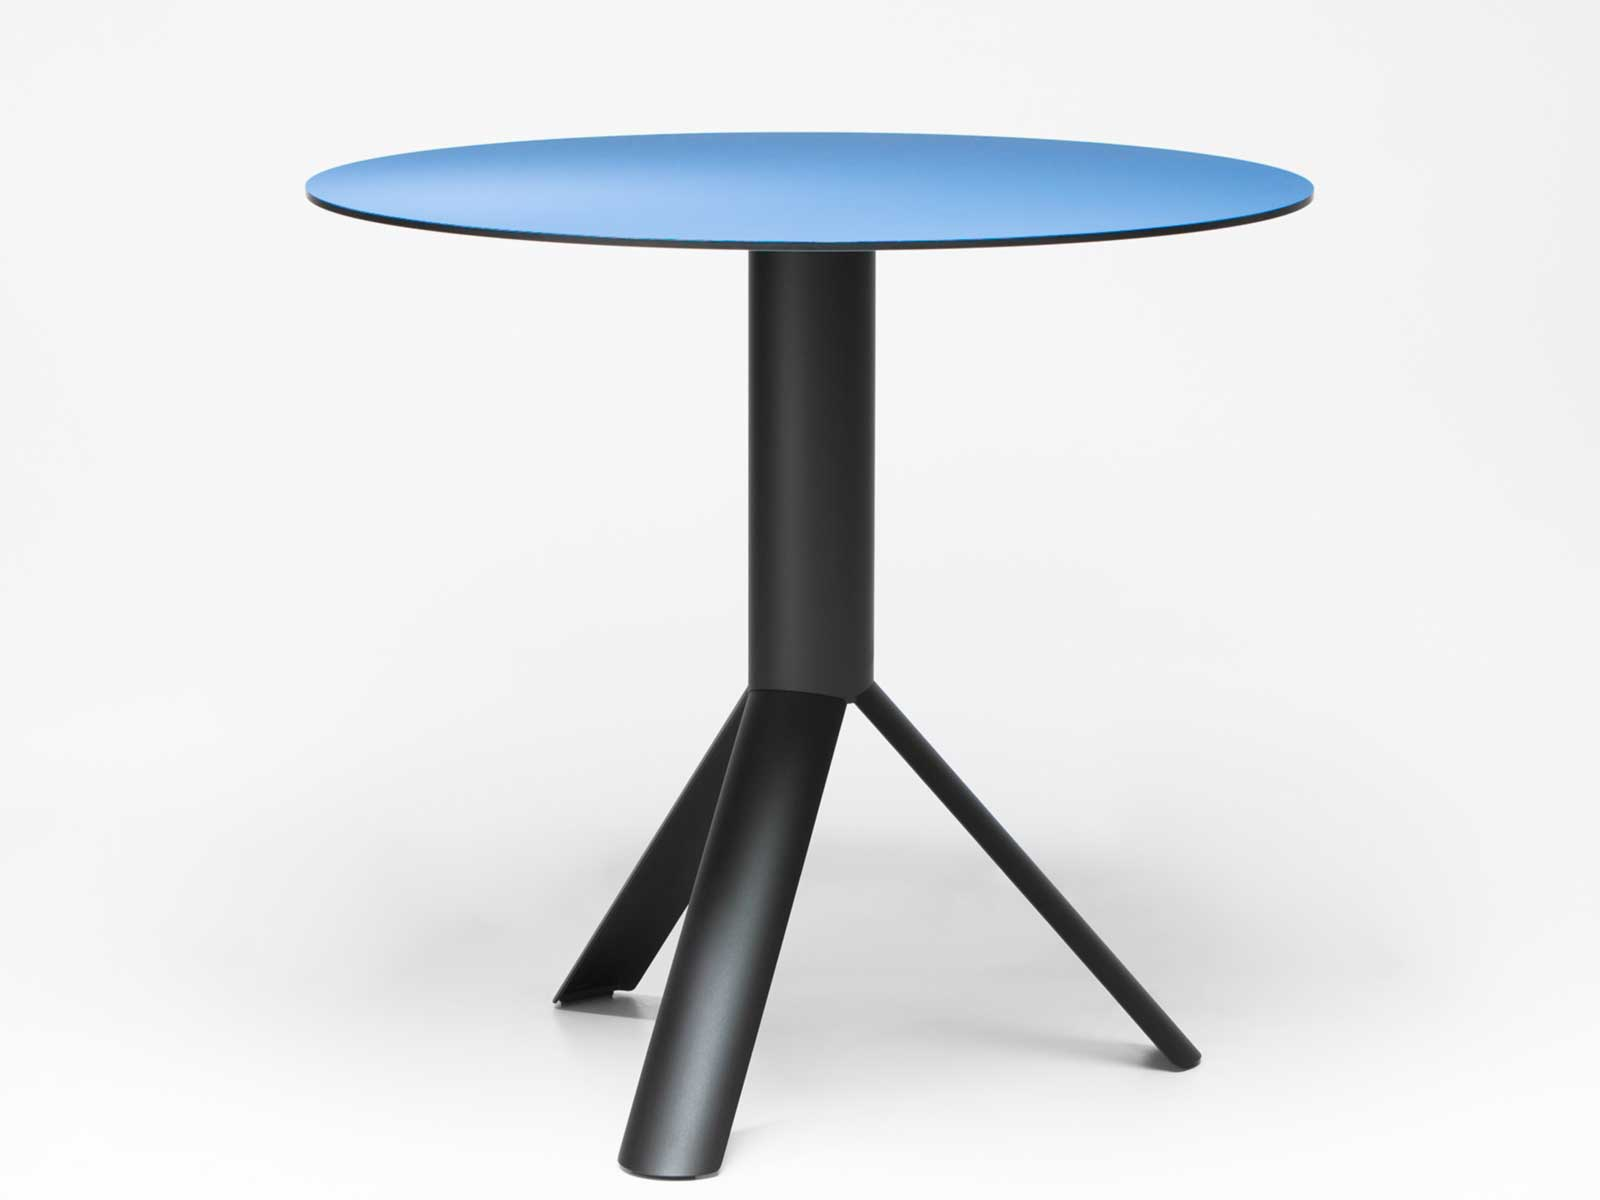 tube bar table 110 cm height ntm nano top layer by fenix. Black Bedroom Furniture Sets. Home Design Ideas